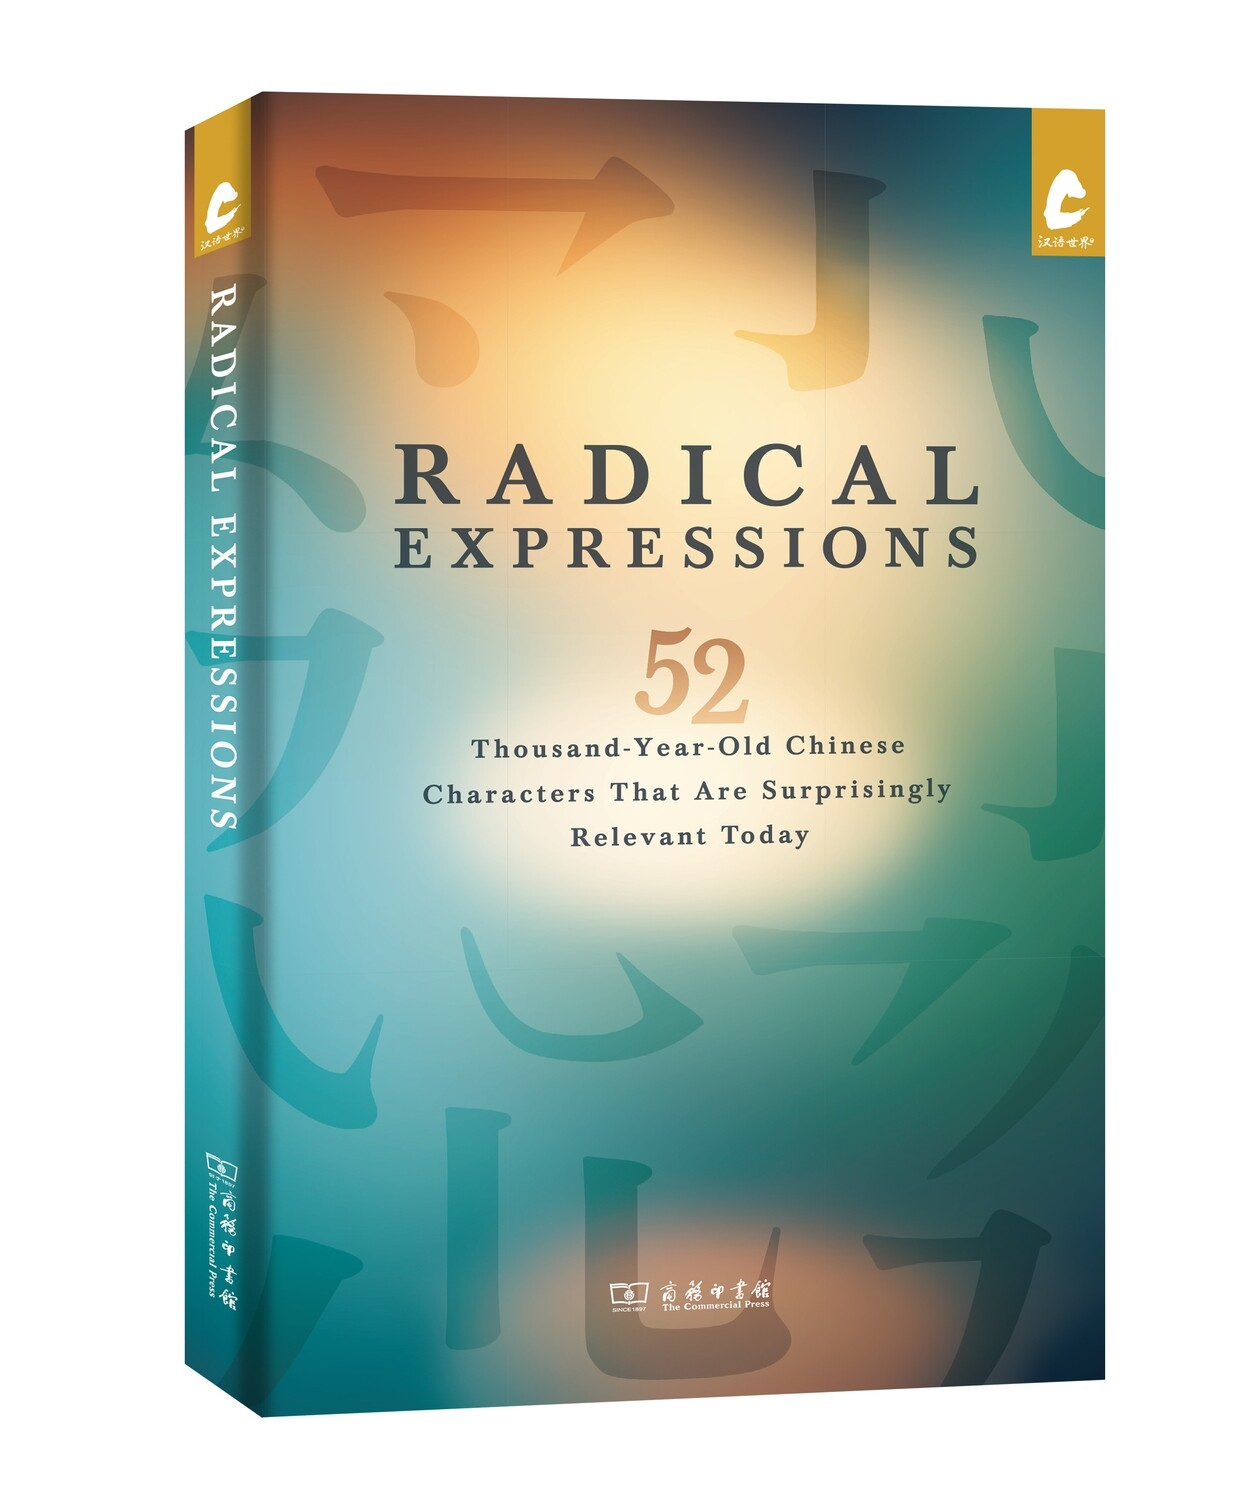 Radical Expressions: 52 Thousand-Year-Old Chinese Characters That Are Surprisingly Relevant Today